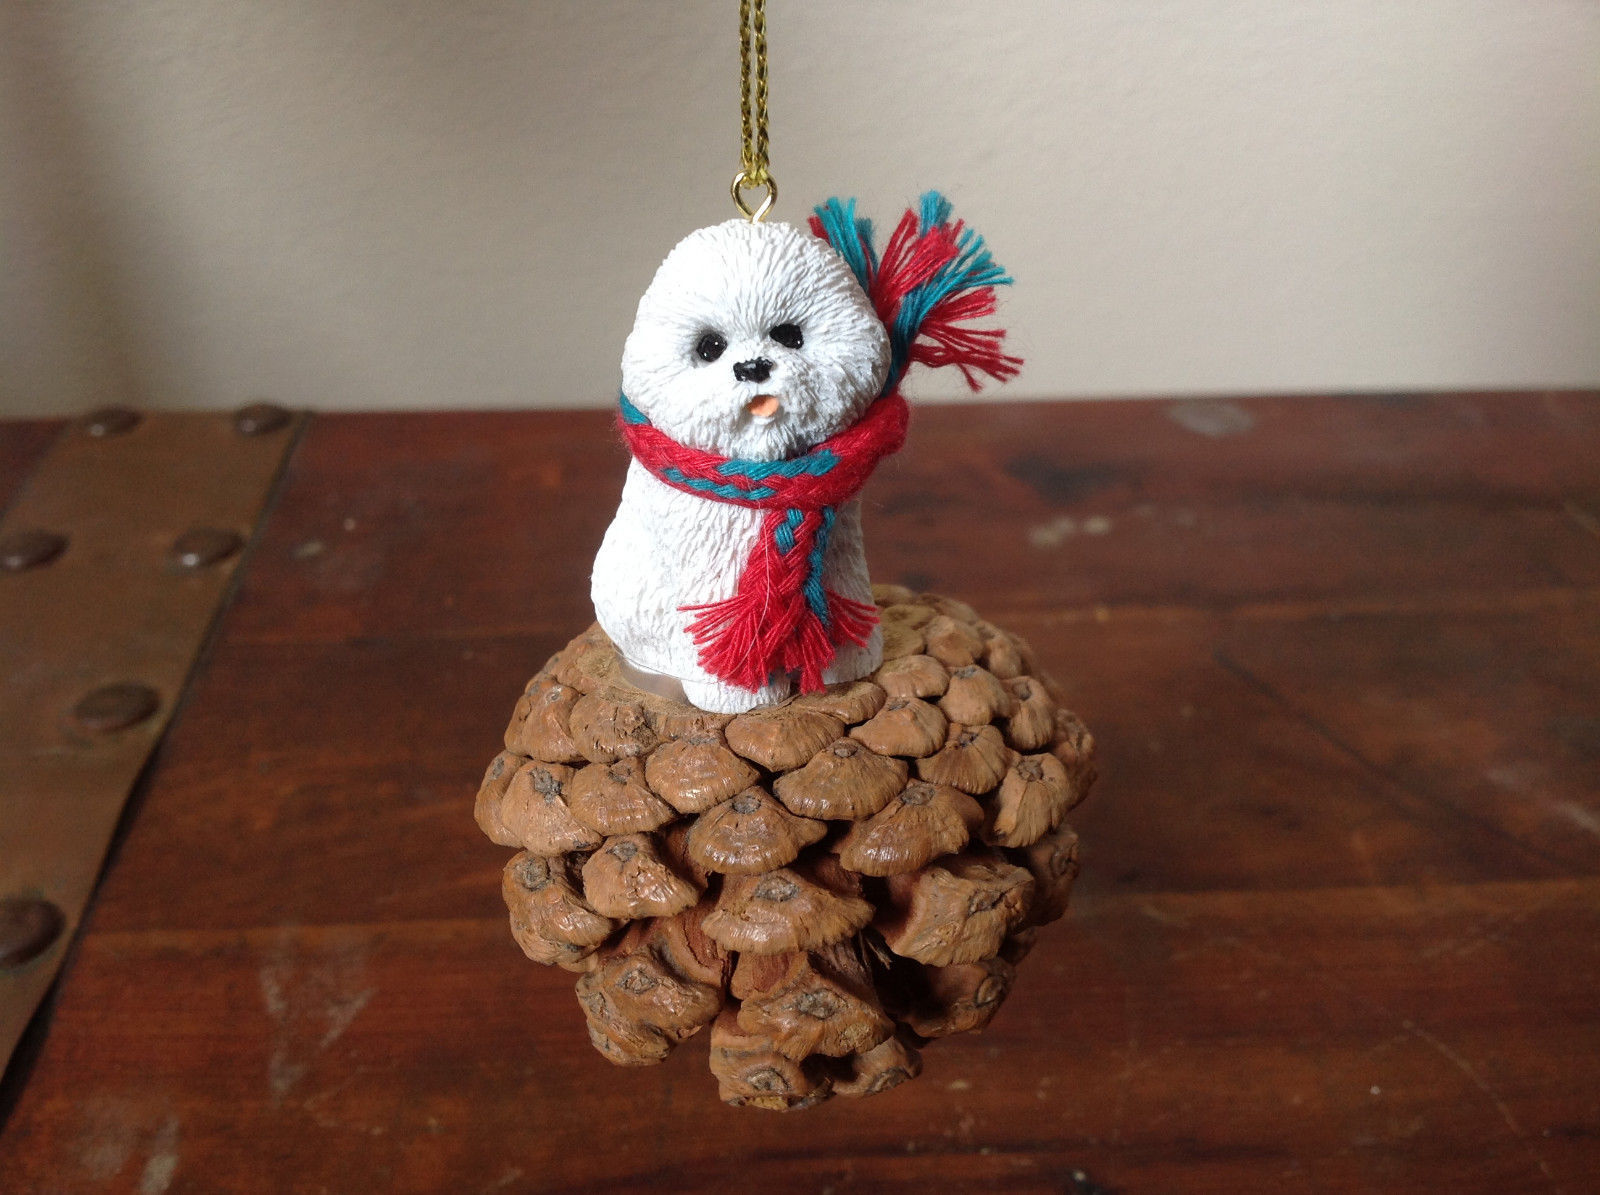 Bichon Frise Pine Cone Pet White Dog with Scarf Ornament Real Pine Cone